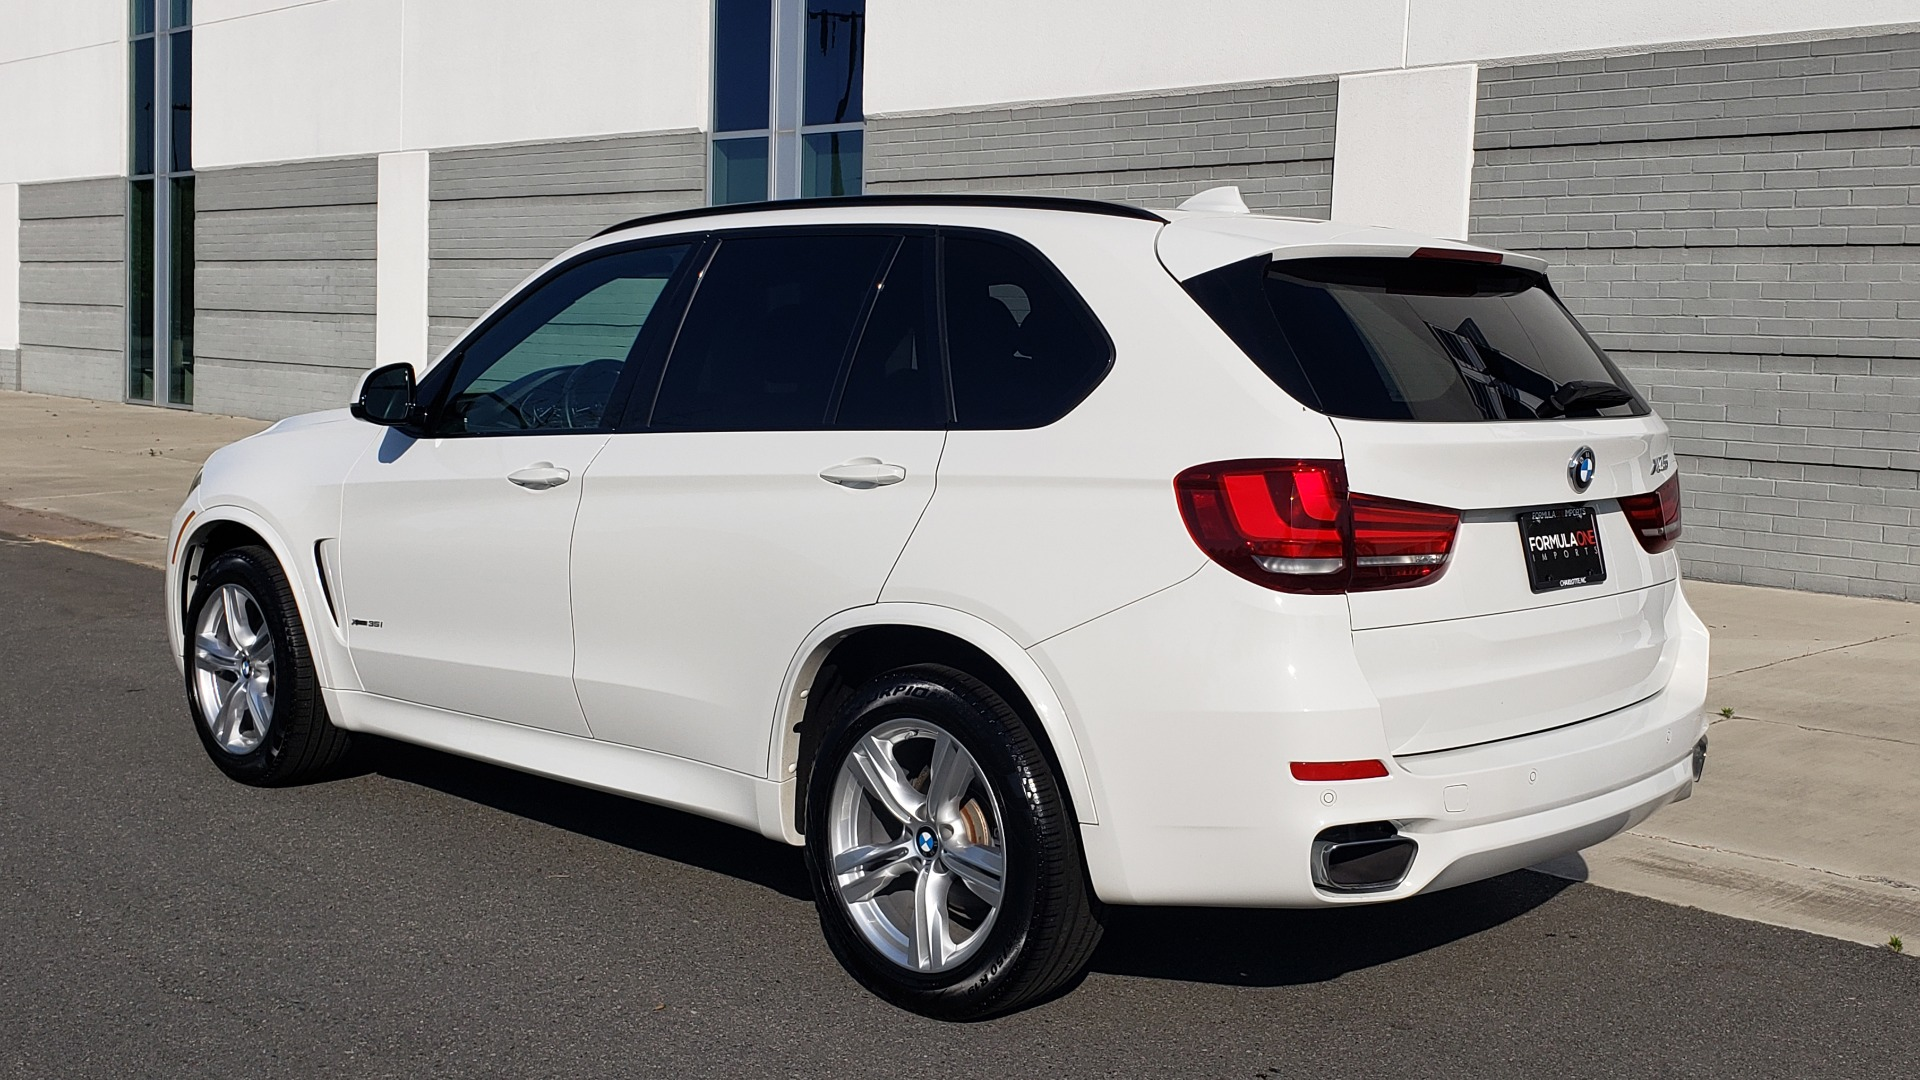 Used 2018 BMW X5 XDRIVE35I / M-SPORT / NAV / SUNROOF / H/K SND / REARVIEW for sale Sold at Formula Imports in Charlotte NC 28227 7